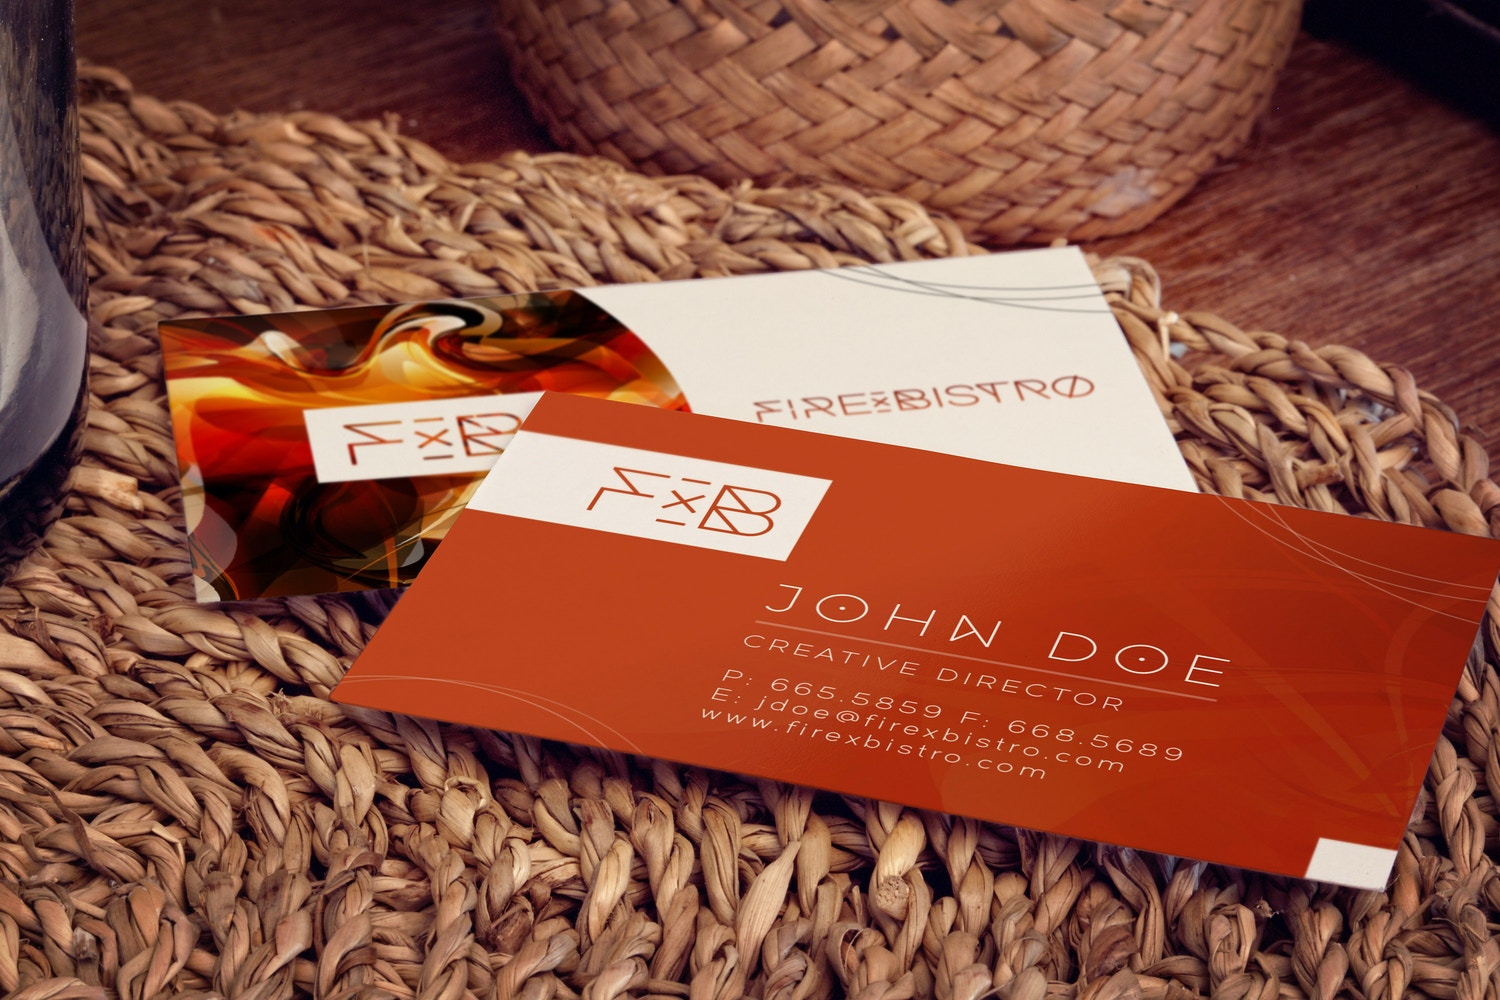 Business Cards Mockup 02 by 4to Pixel on Original Mockups